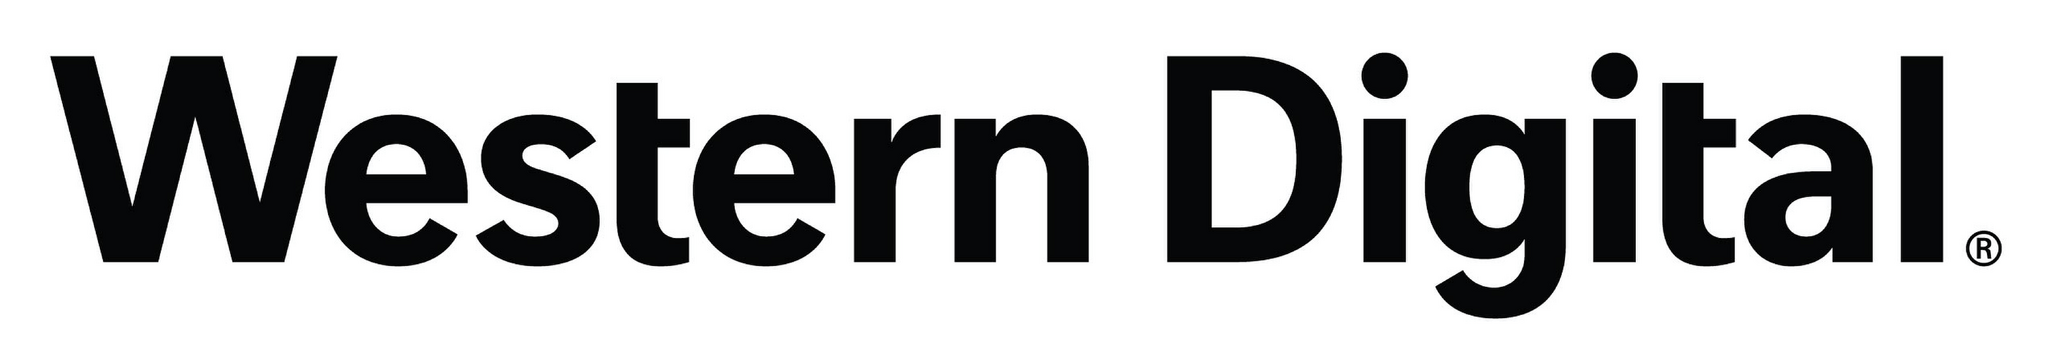 Western Digital Corporation logo